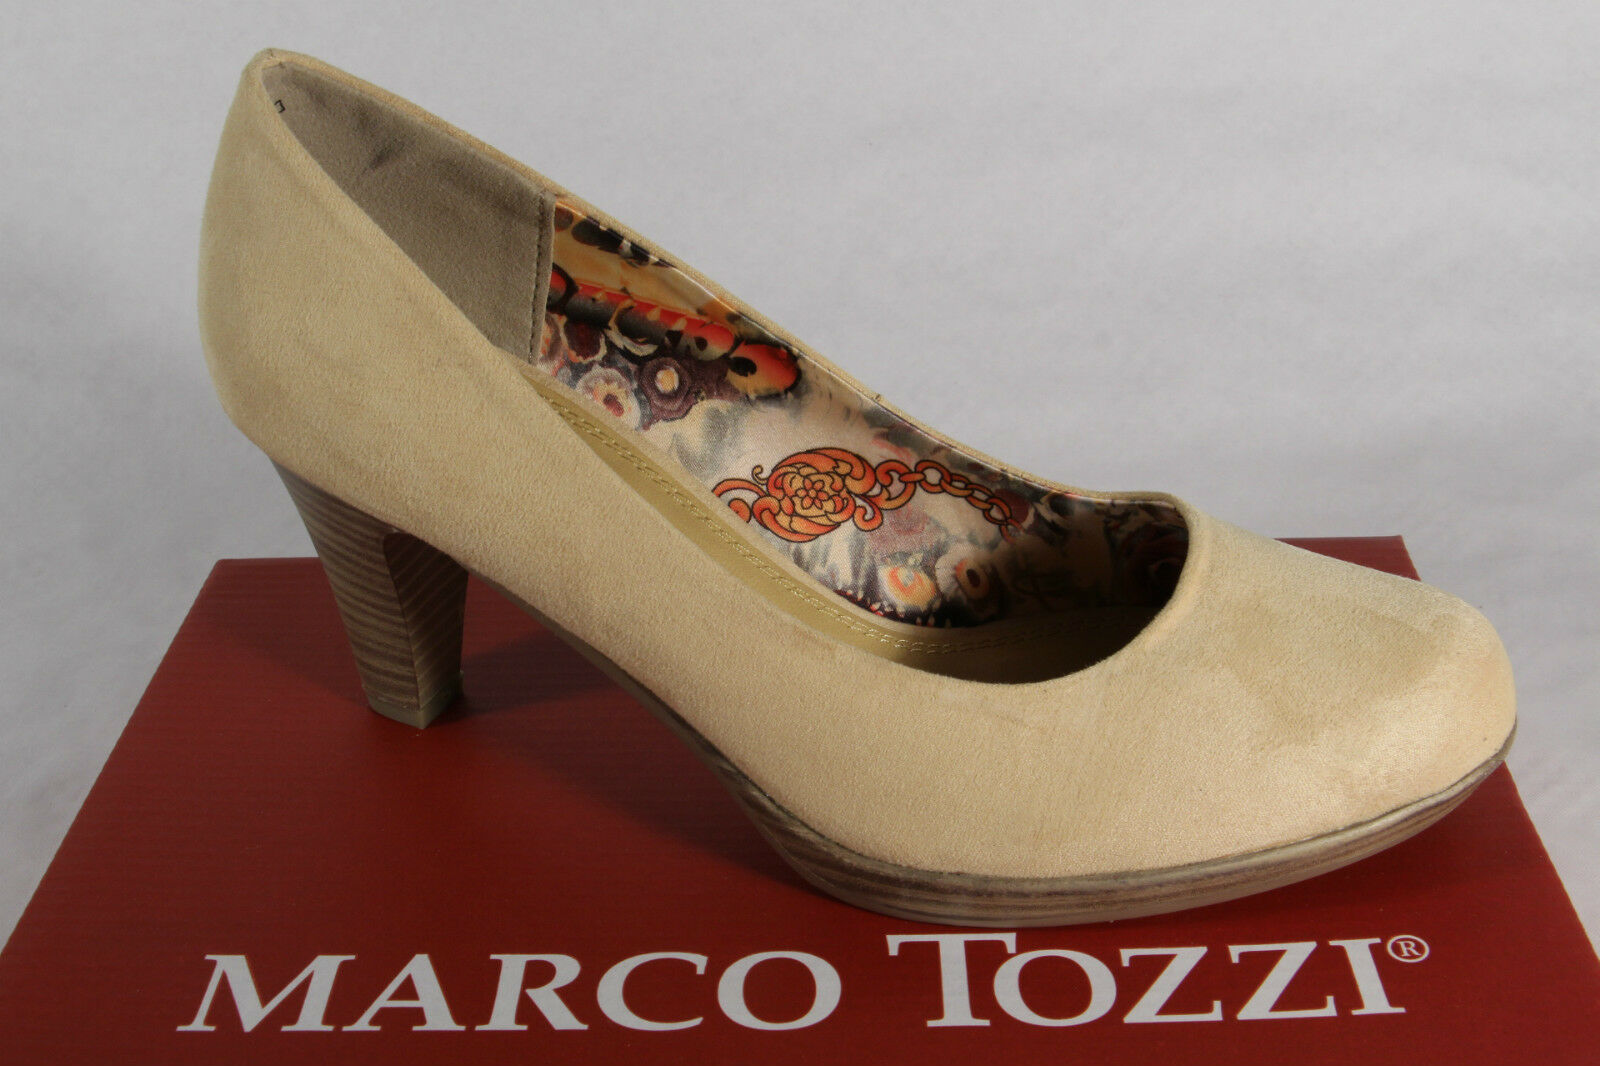 Marco Tozzi Court shoes, Yellow, Soft Inner Sole New